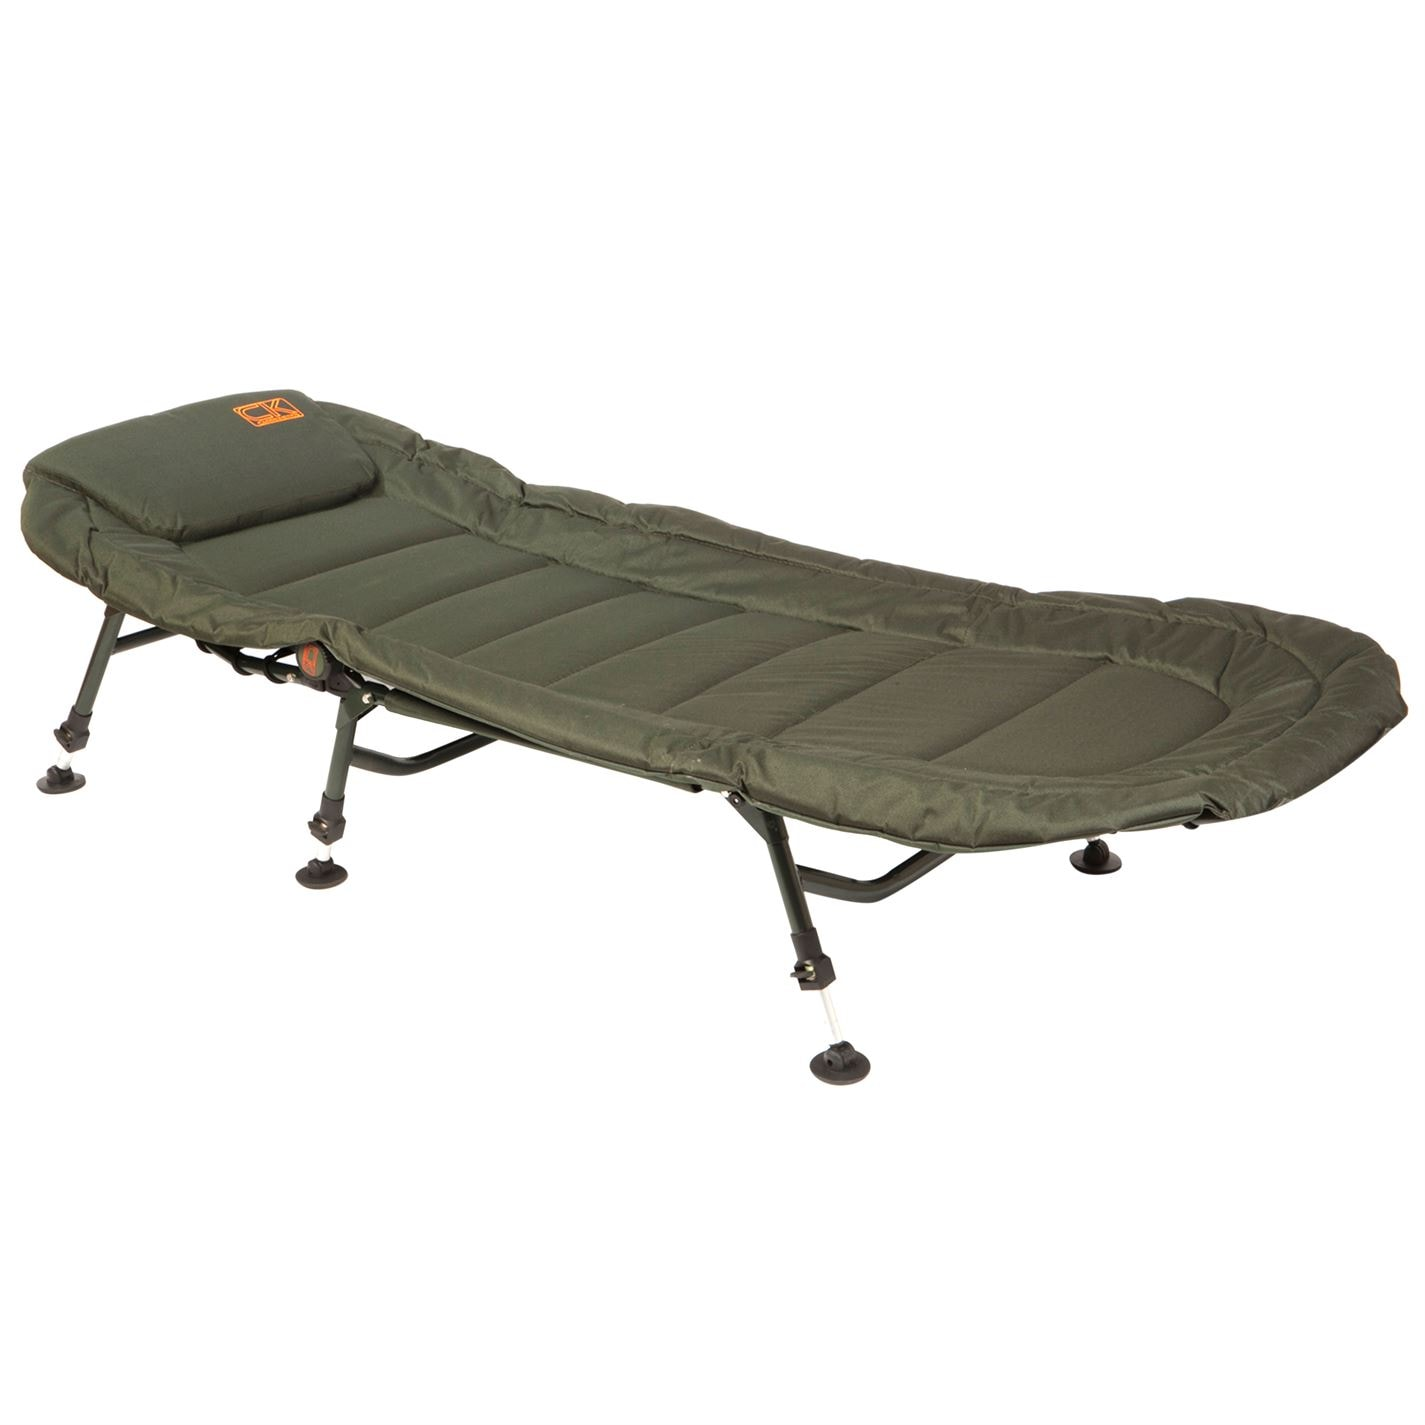 ngt fishing chair beach chairs on sale at walmart double bed roole